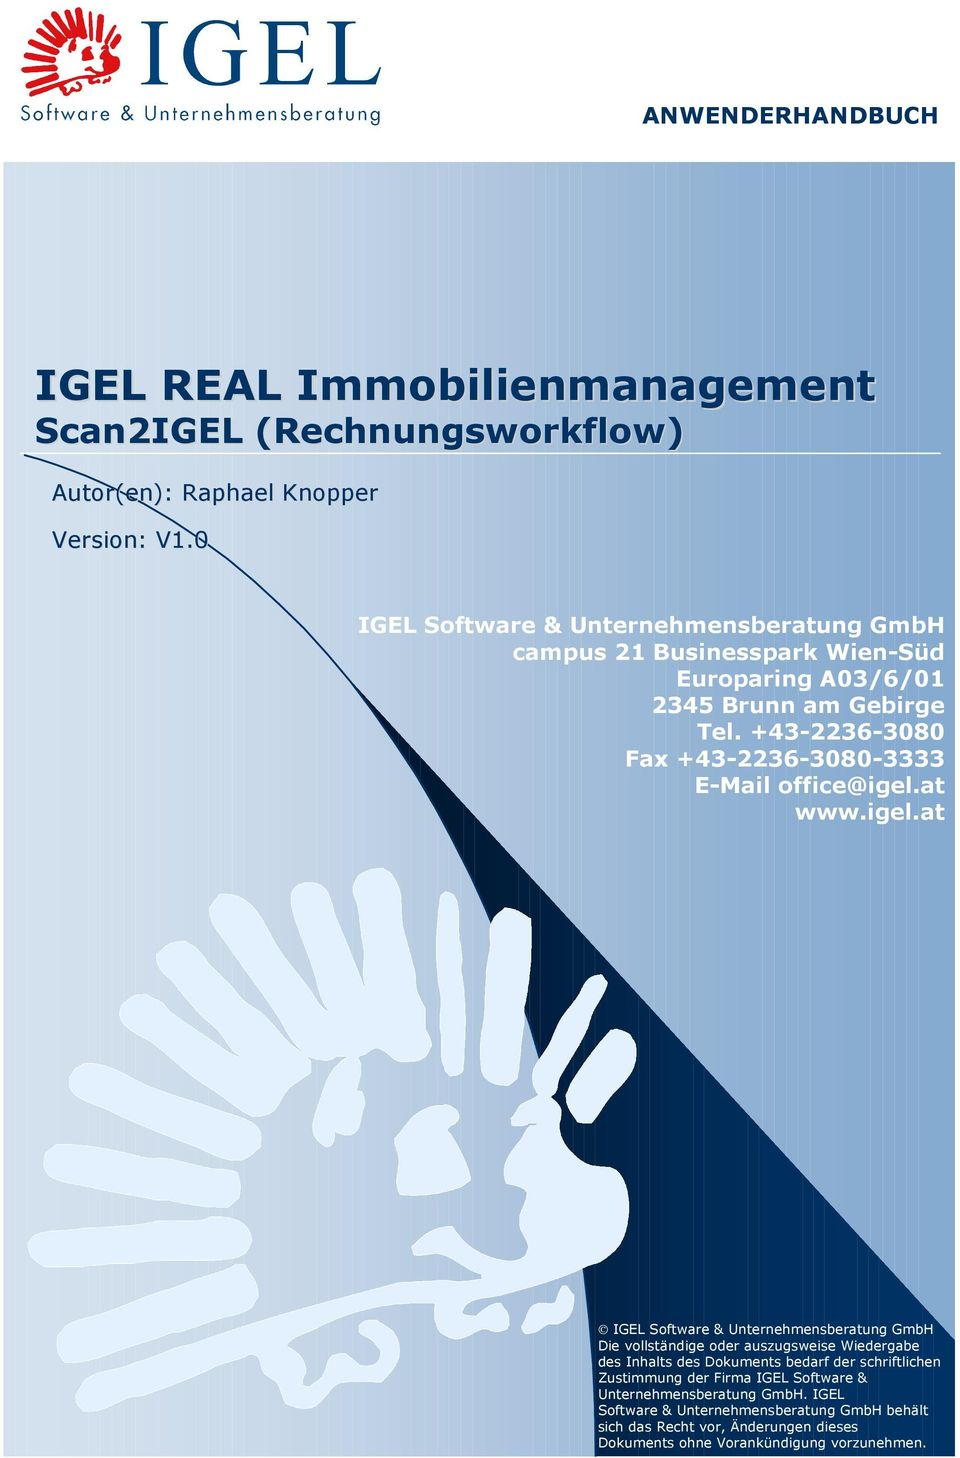 +43-2236-3080 Fax +43-2236-3080-3333 E-Mail office@igel.